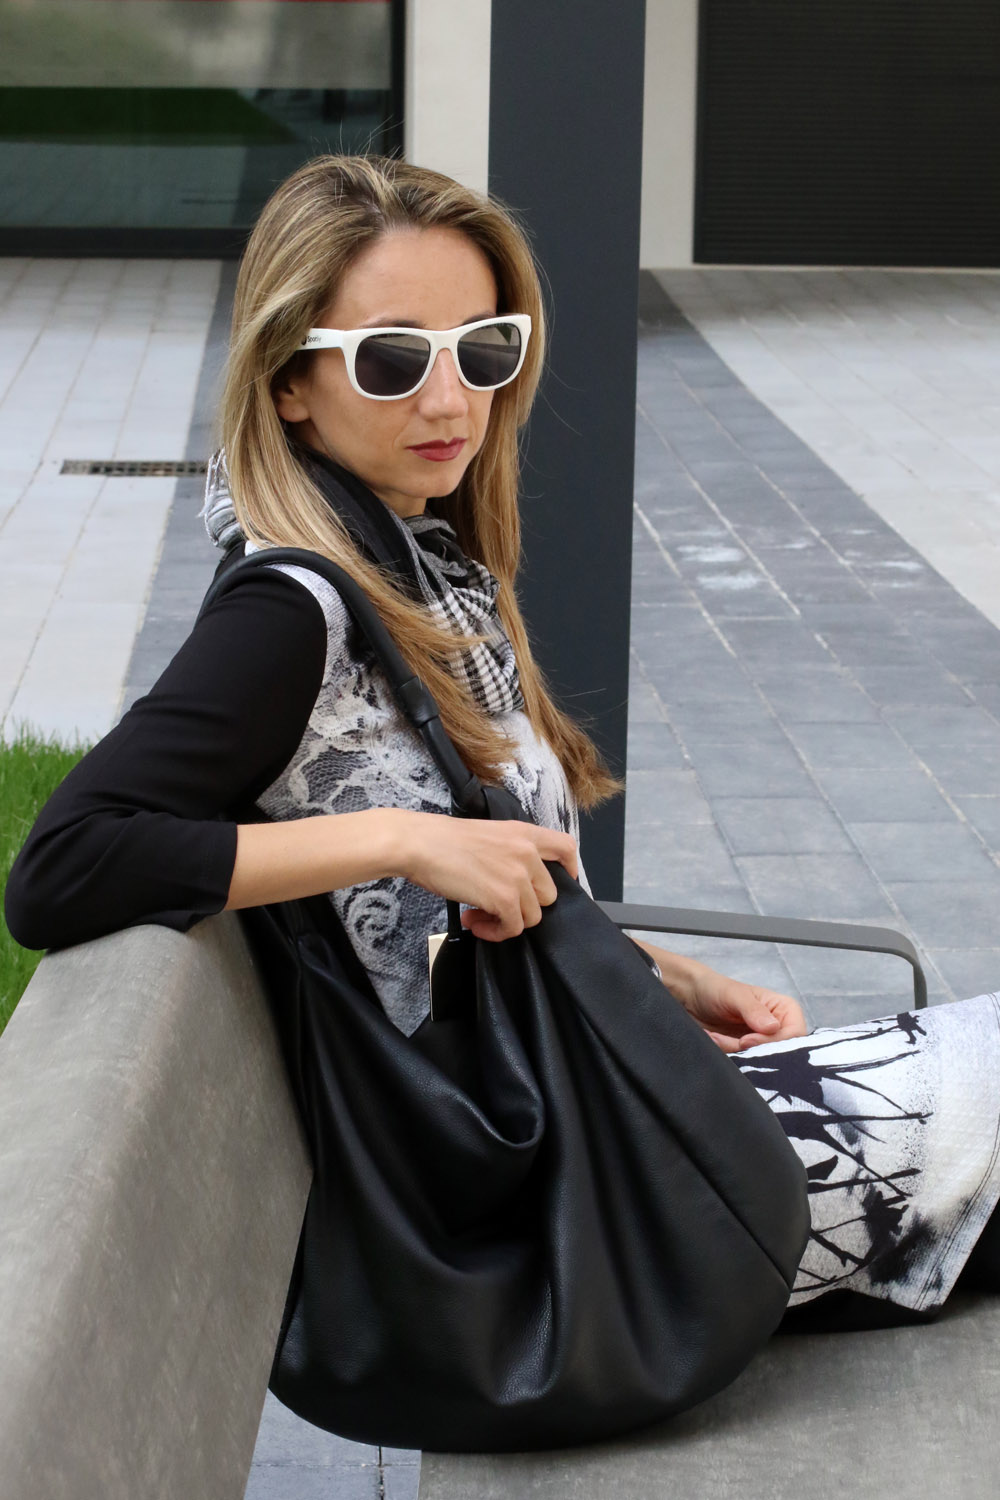 colourclub-fashionblog-outfit-white-sunglasses